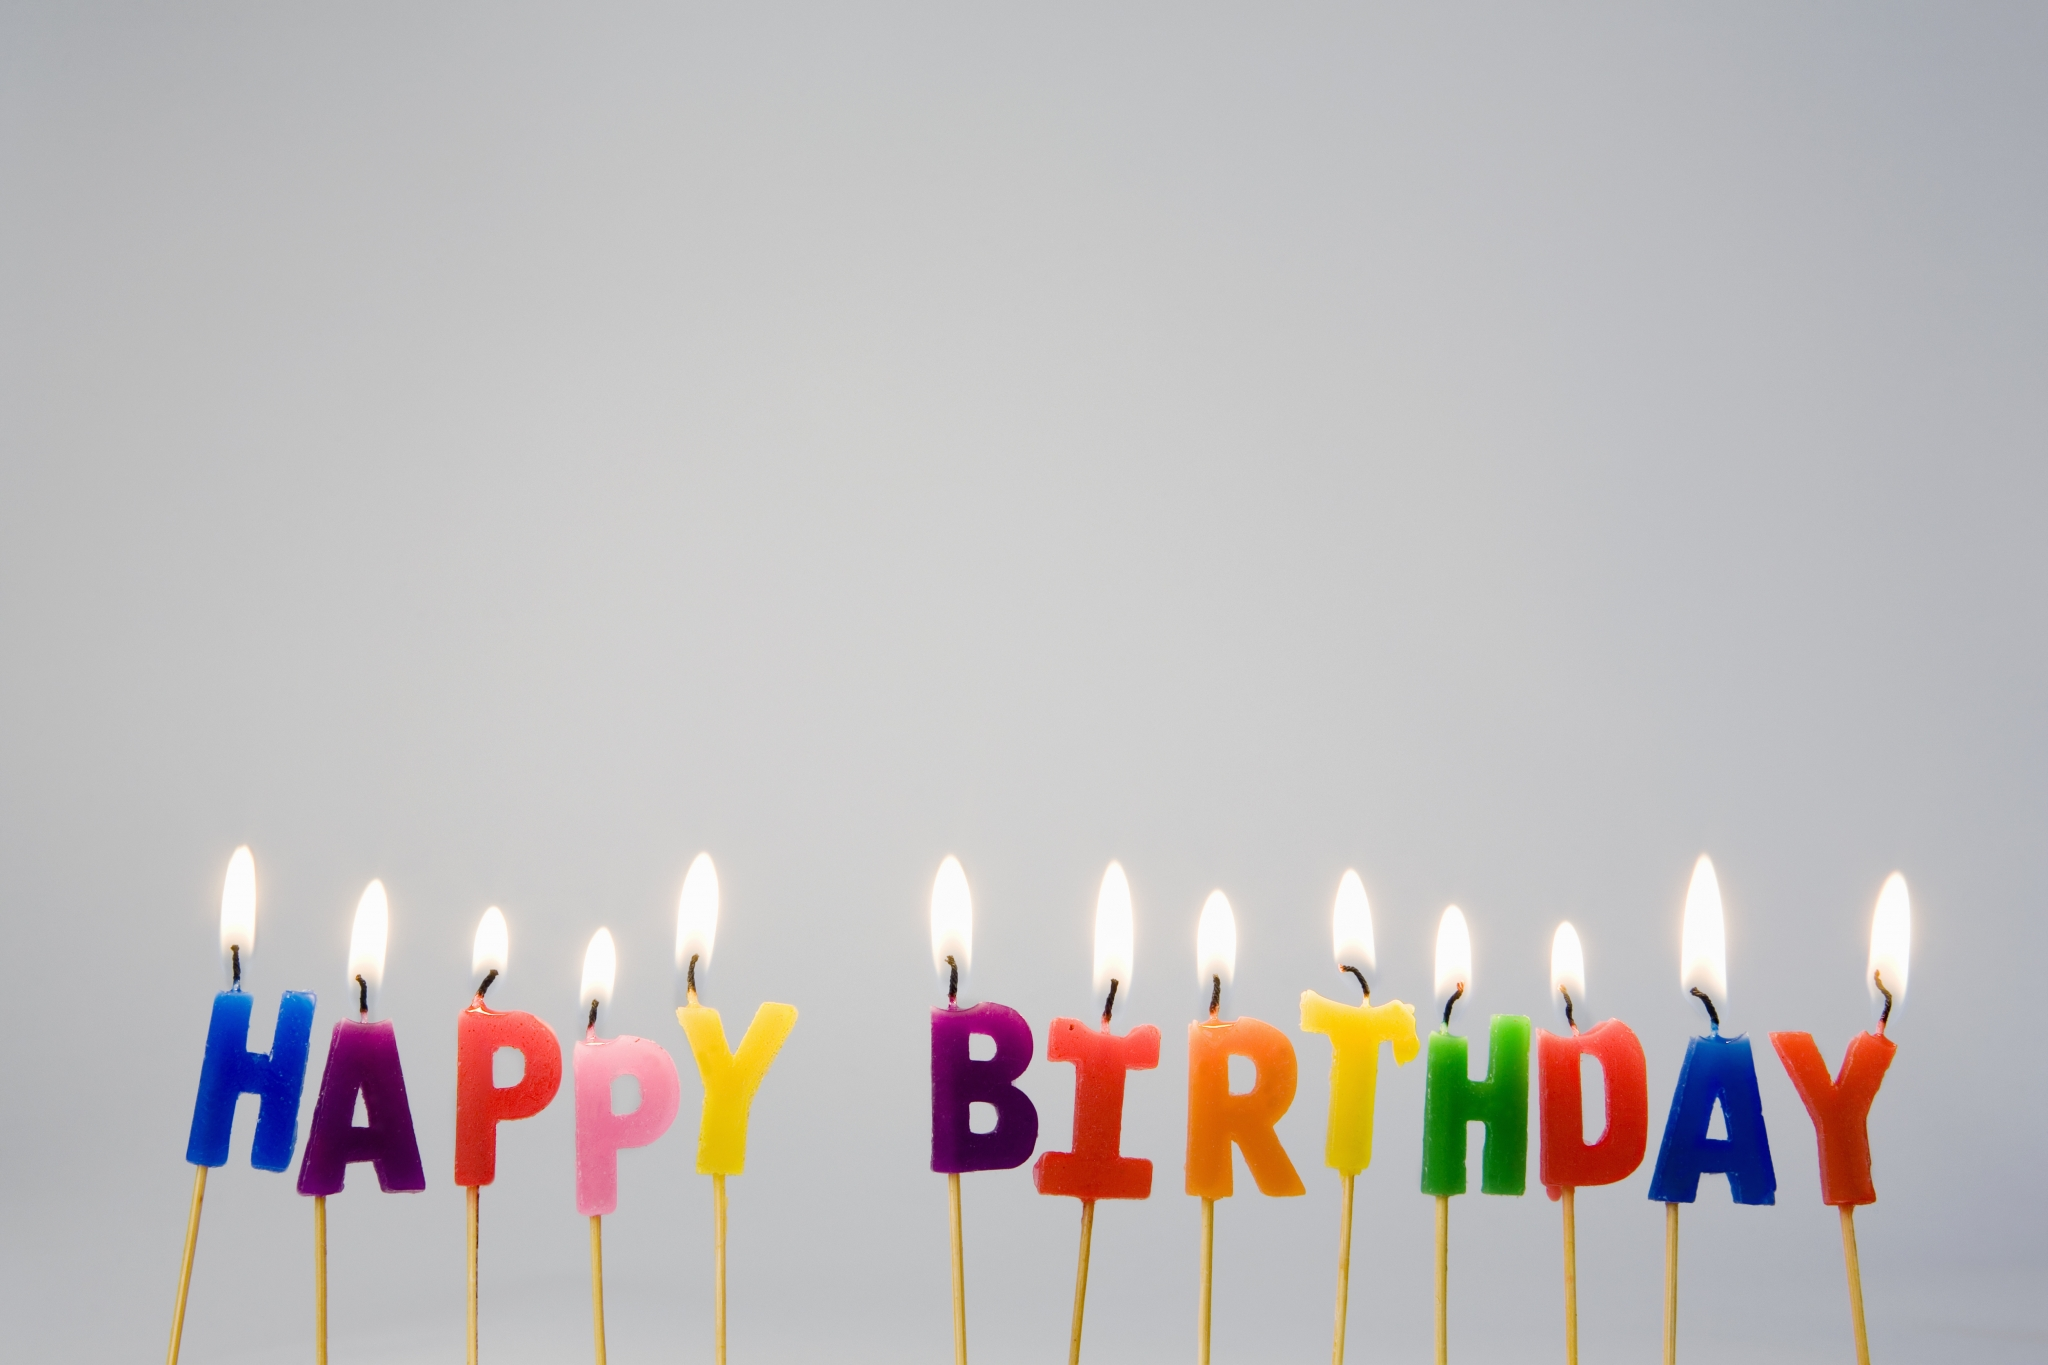 78 things you can get for free for your birthday in Texas